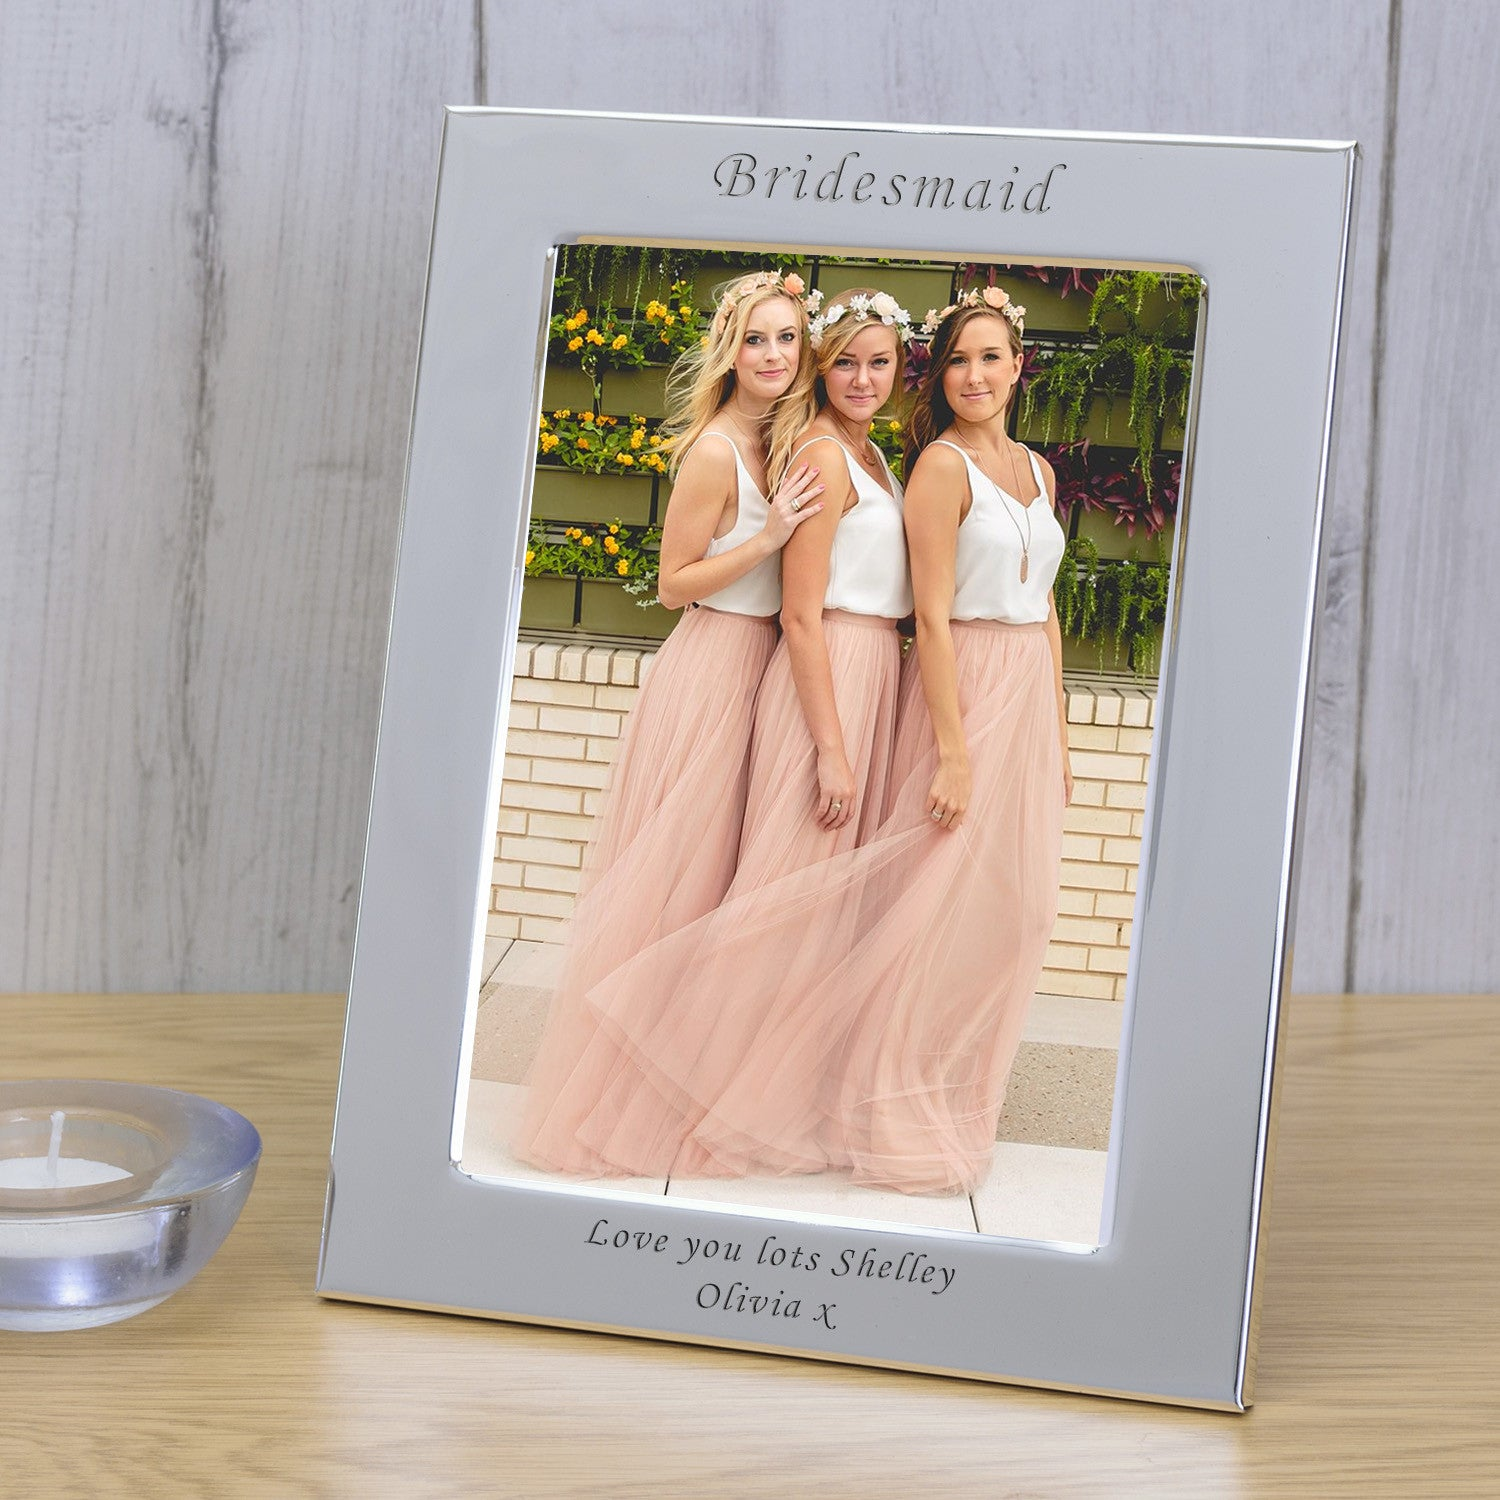 6x4 Personalised Silver Plated Frame Bridesmaid | Gifts24-7.co.uk